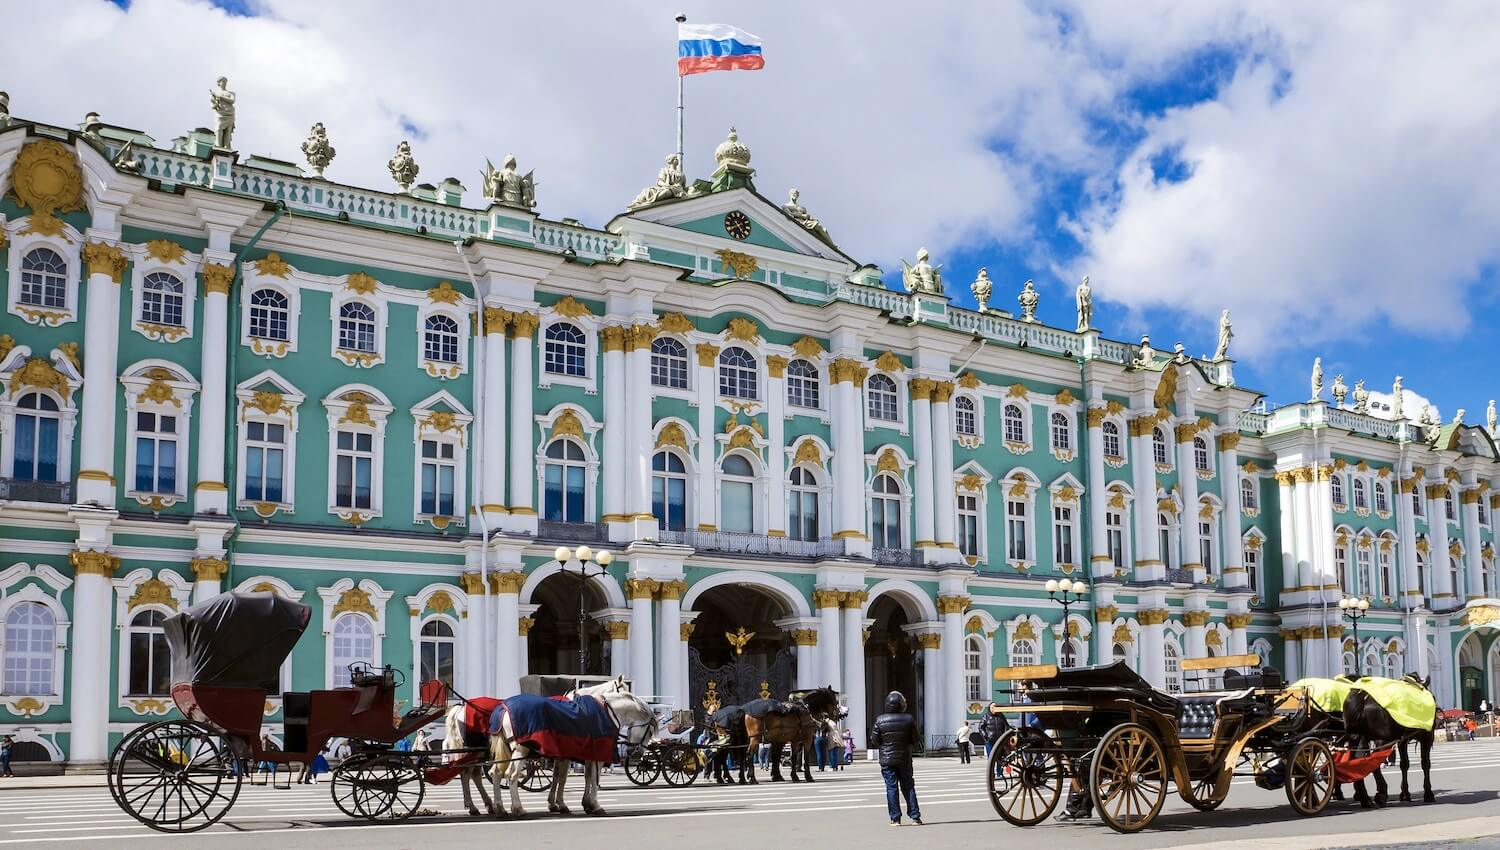 state-hermitage-museum-russia